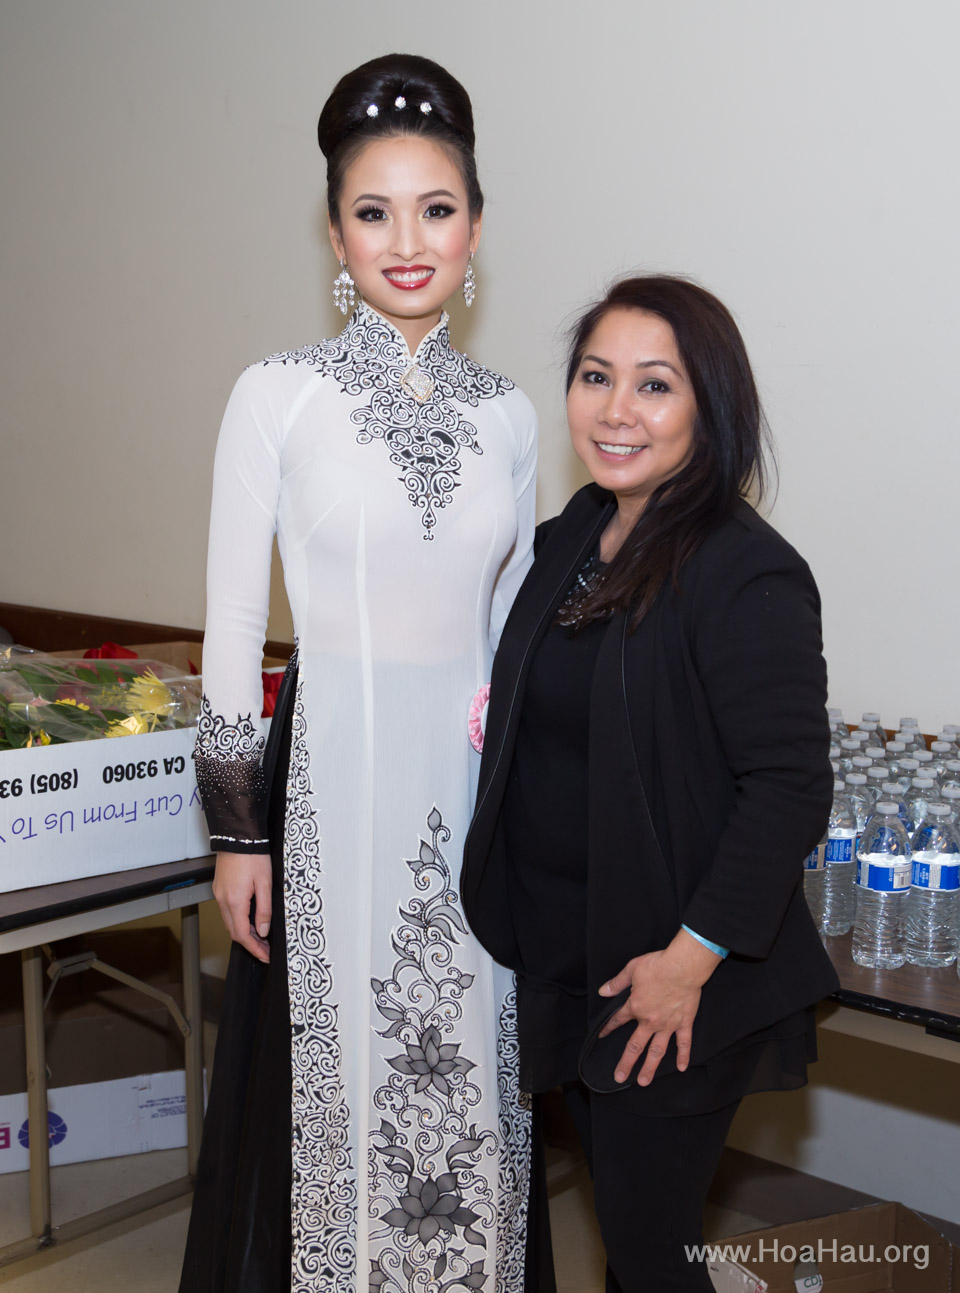 Miss Vietnam of Northern California 2014 - Hoa Hau Ao Dai Bac Cali 2014 - Behind the Scenes - Image 231